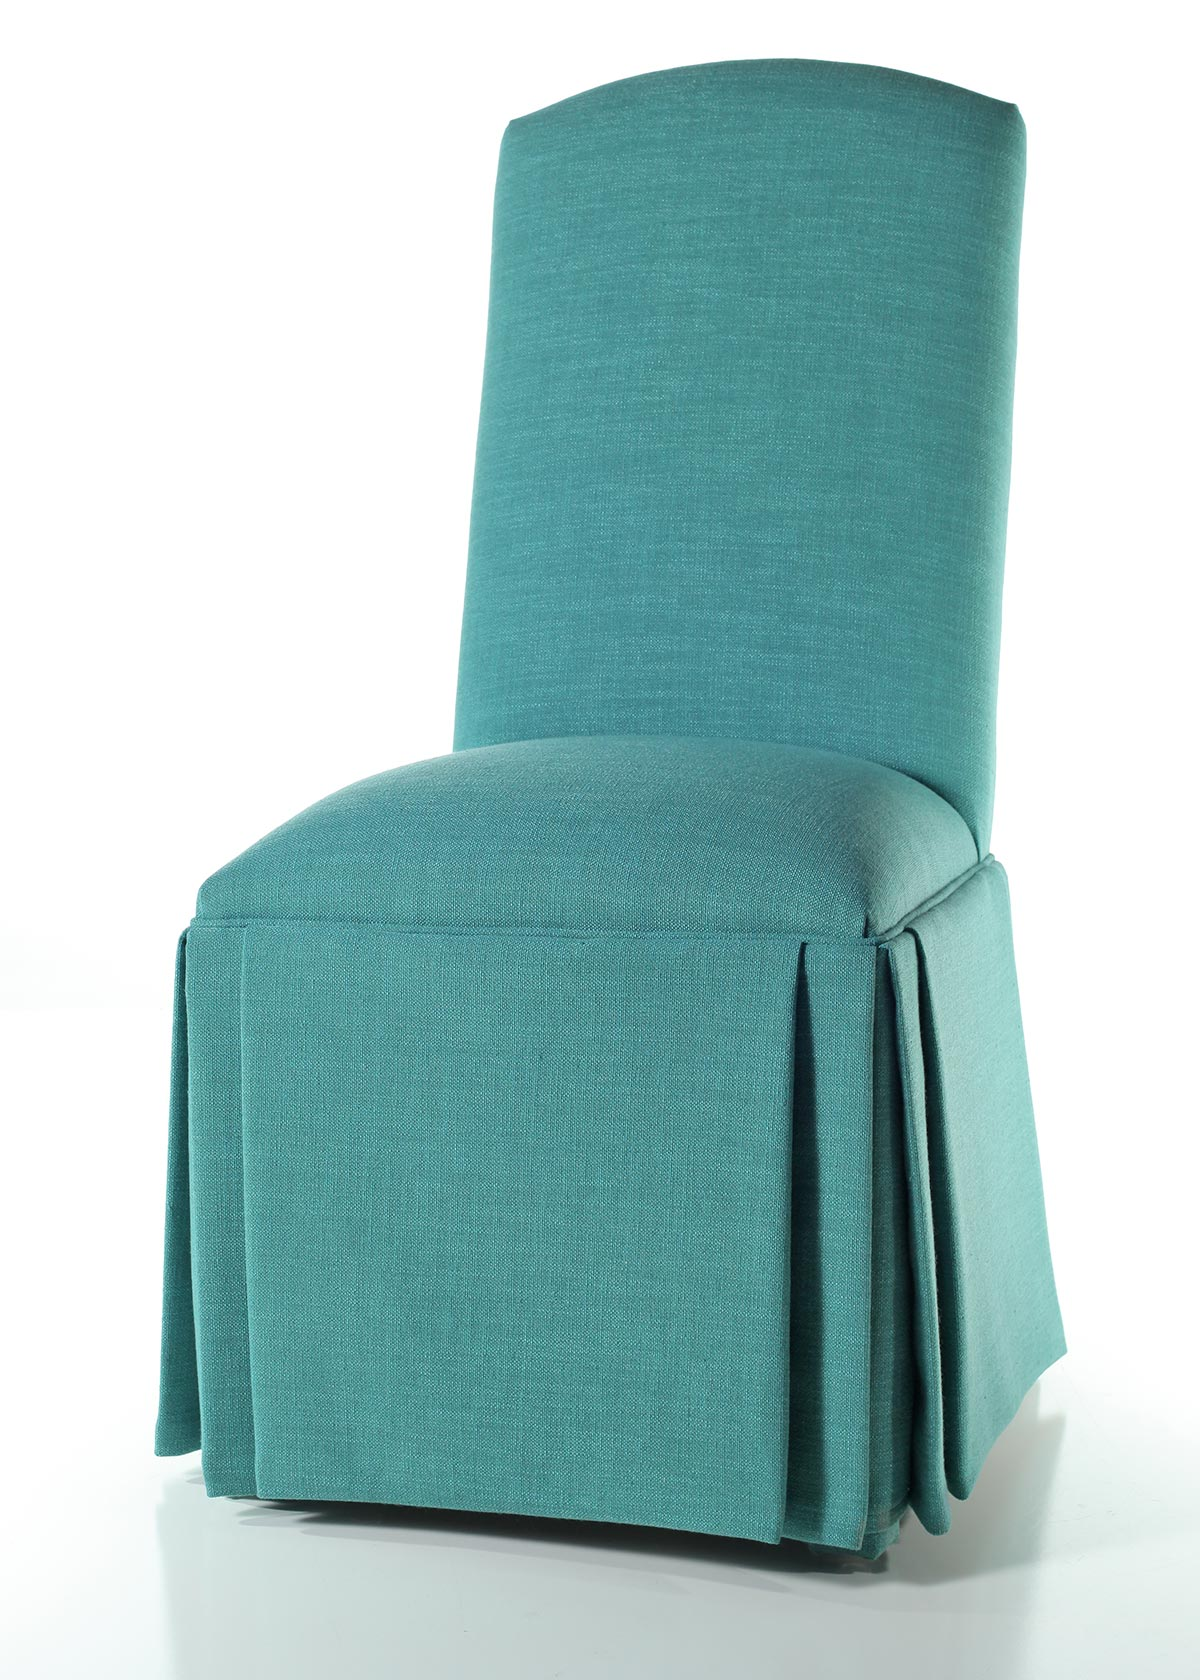 parsons chairs slipcovers weaving rope chair seats crescent back triple pleat skirt, custom fabric - buy direct